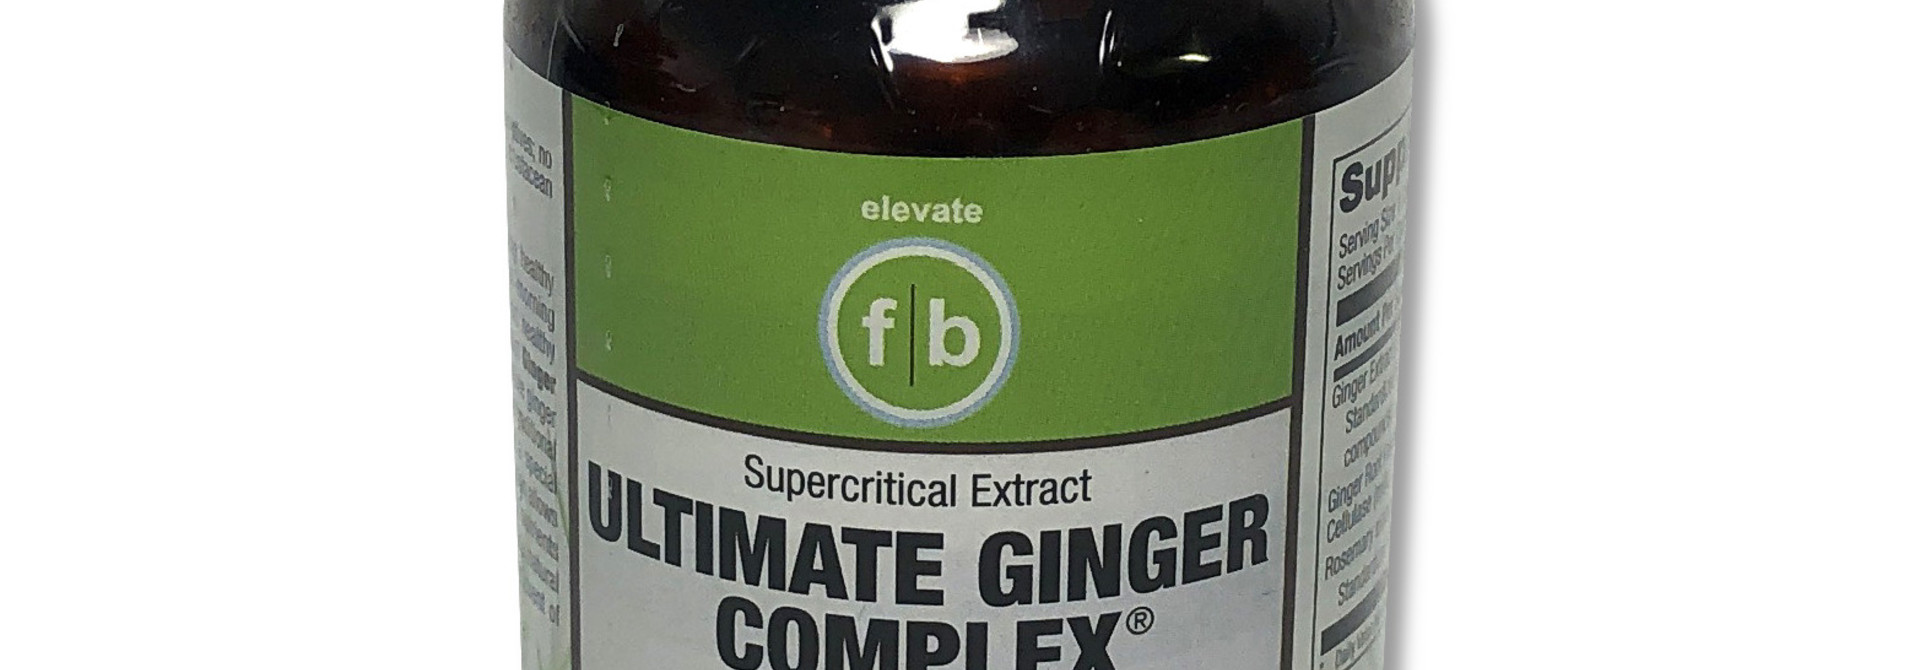 Ultimate Ginger Complex